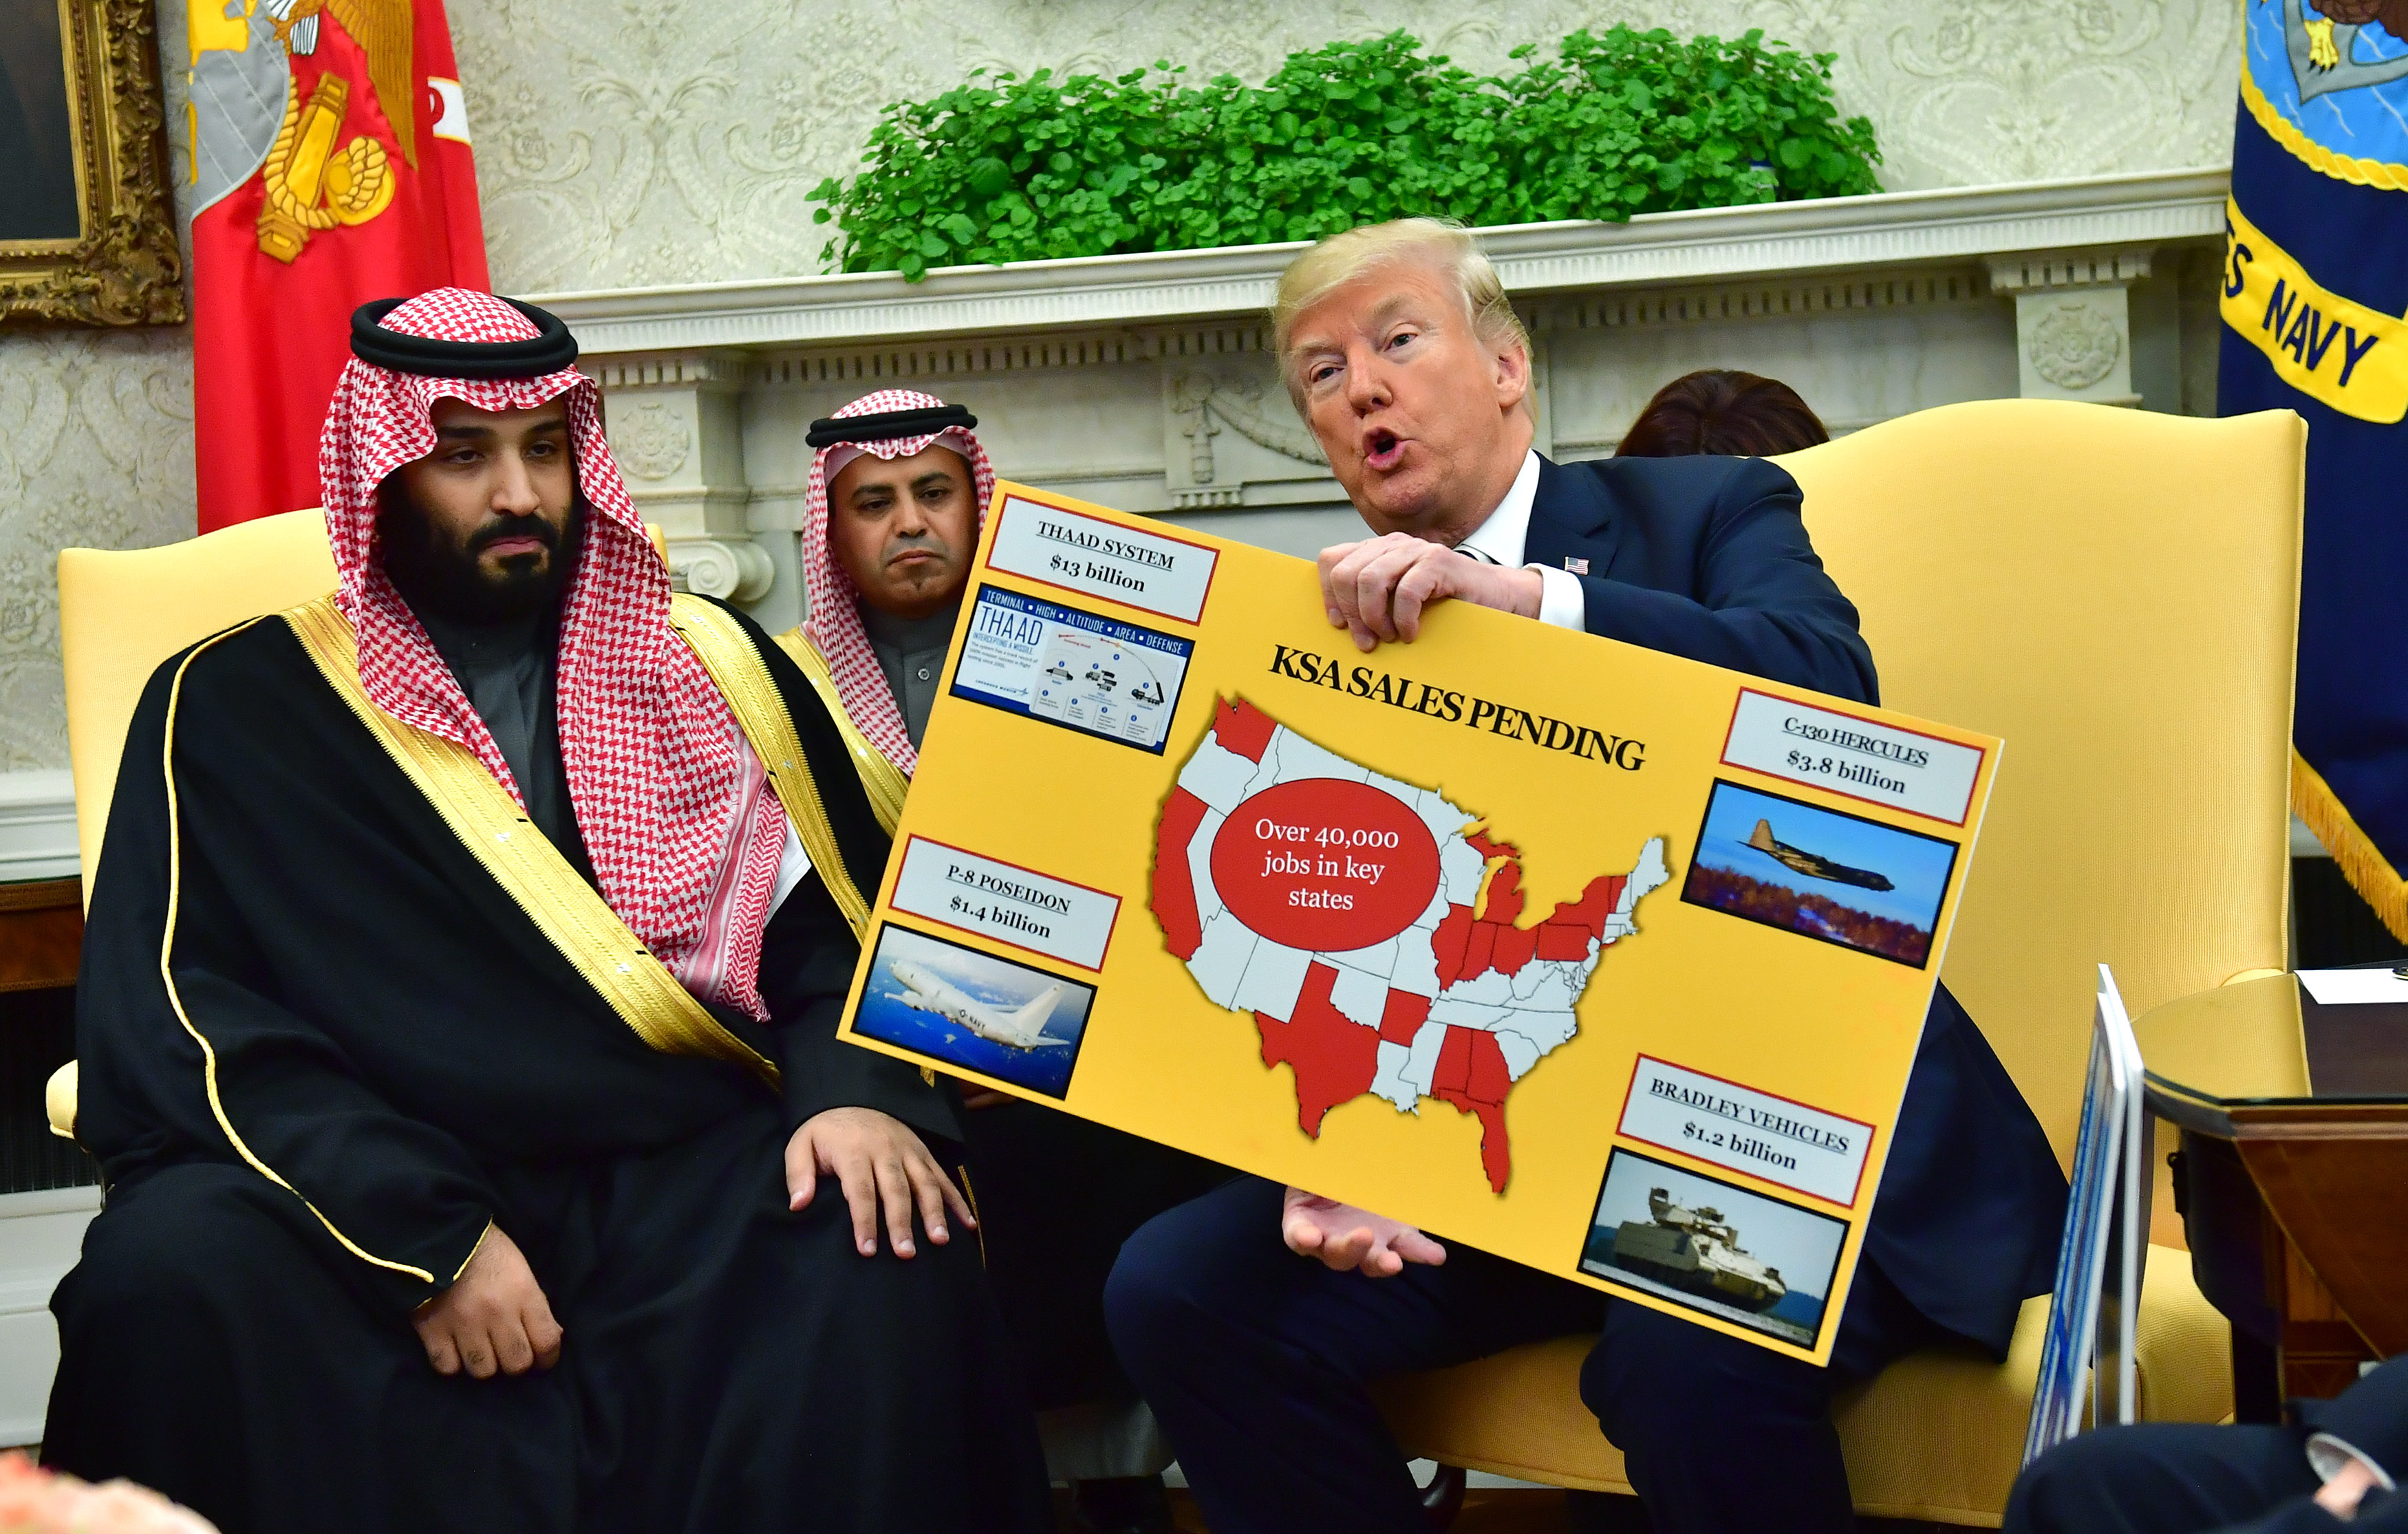 President Donald Trump holds up a chart of military hardware sales as he meets with Crown Prince Mohammed bin Salman of the Kingdom of Saudi Arabia at the White House on March 20, 2018 in Washington, DC.